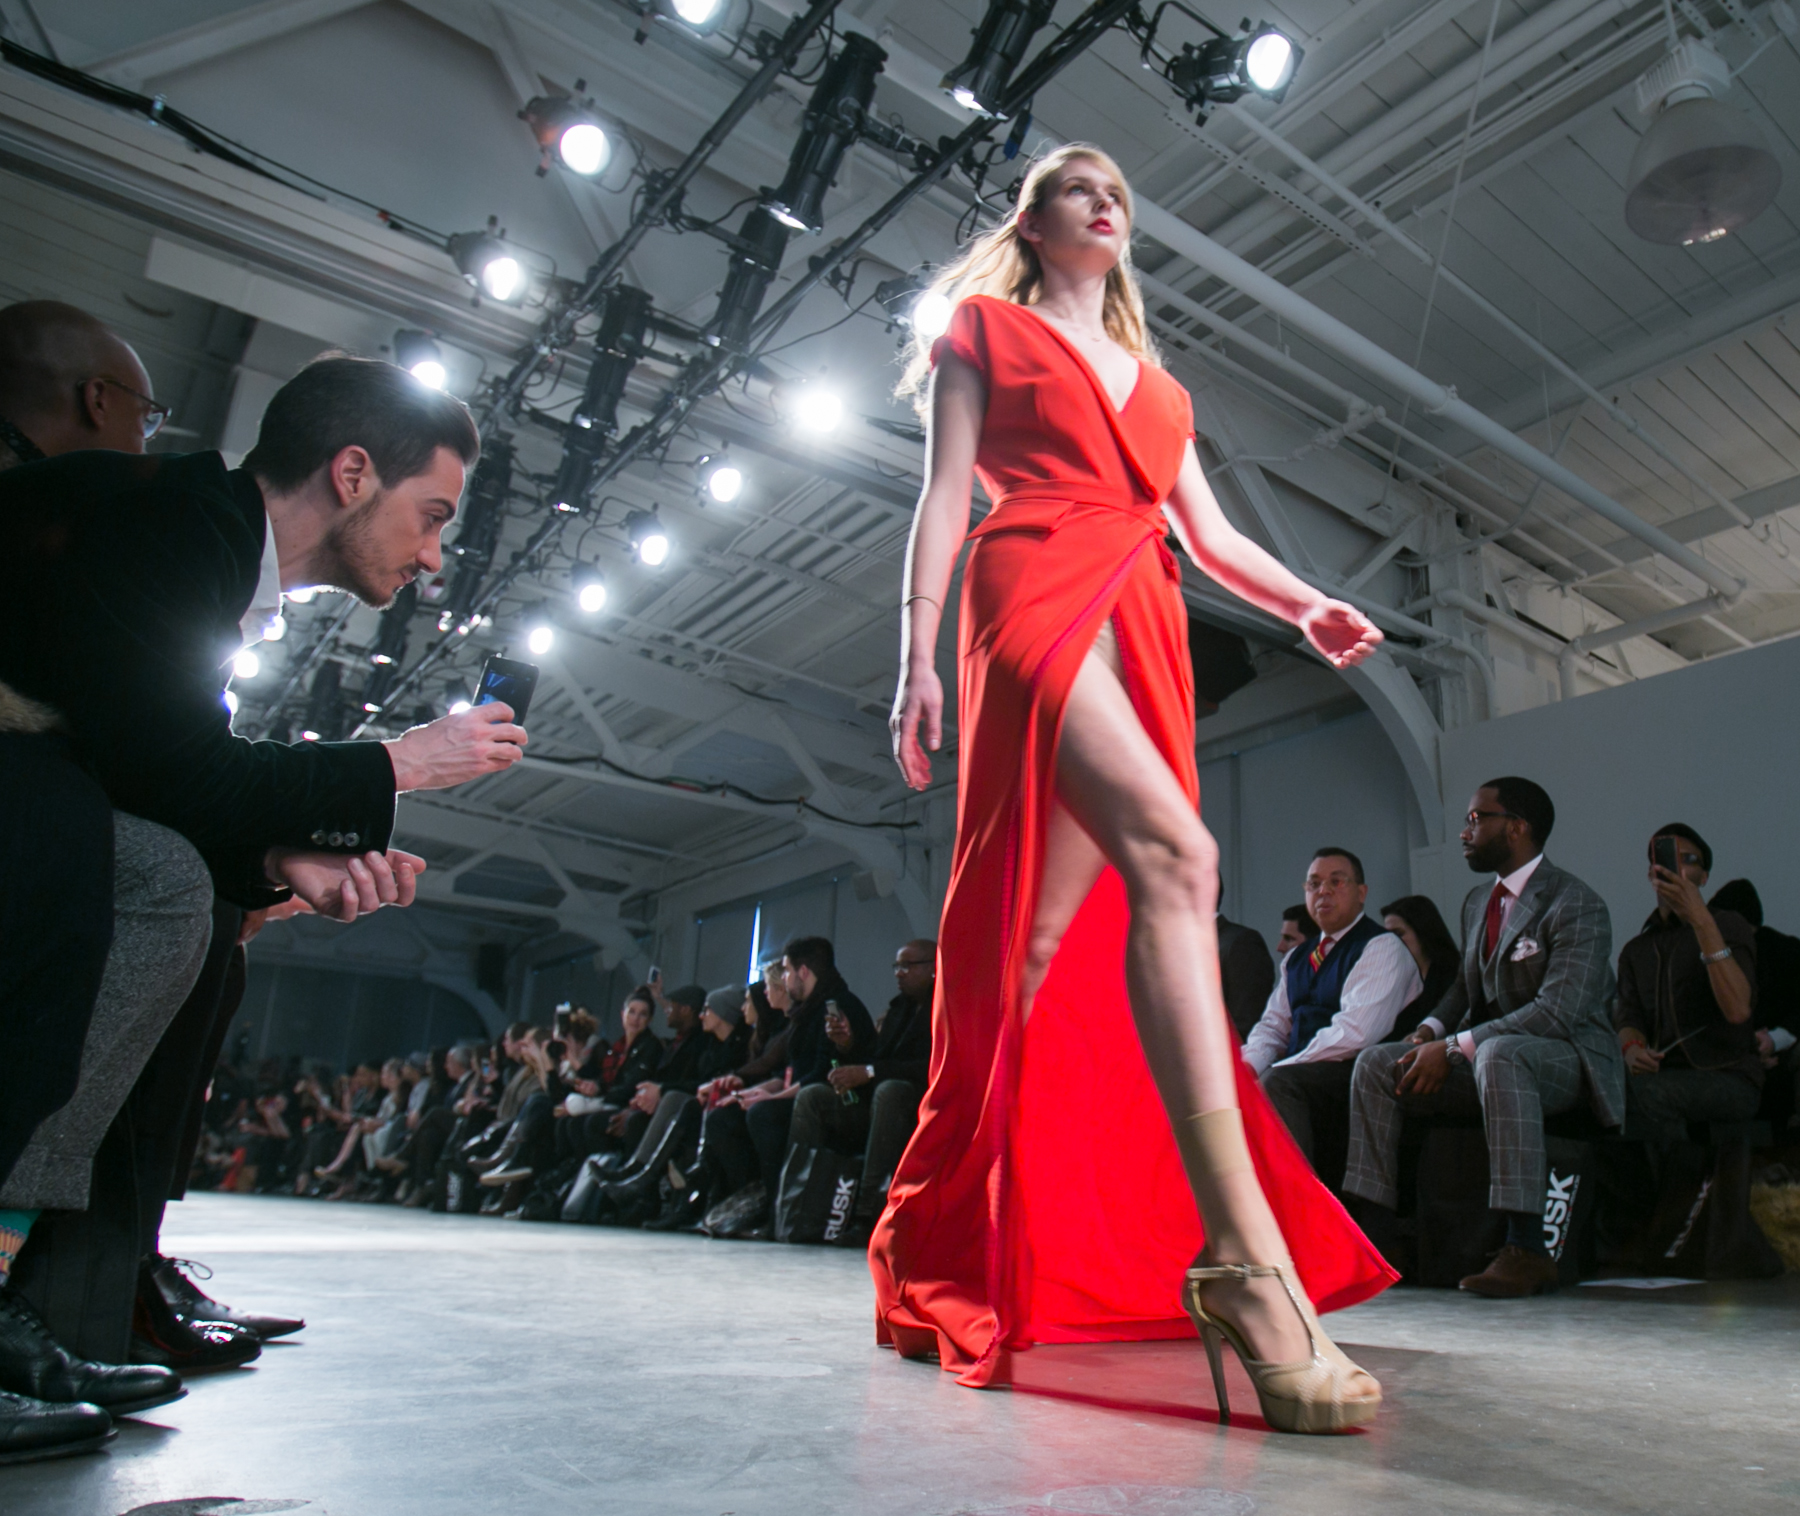 Nolcha Fashion Week in New York for 2014 Fall/Winter by Jeffrey Holmes, Fashion Week New York photographer